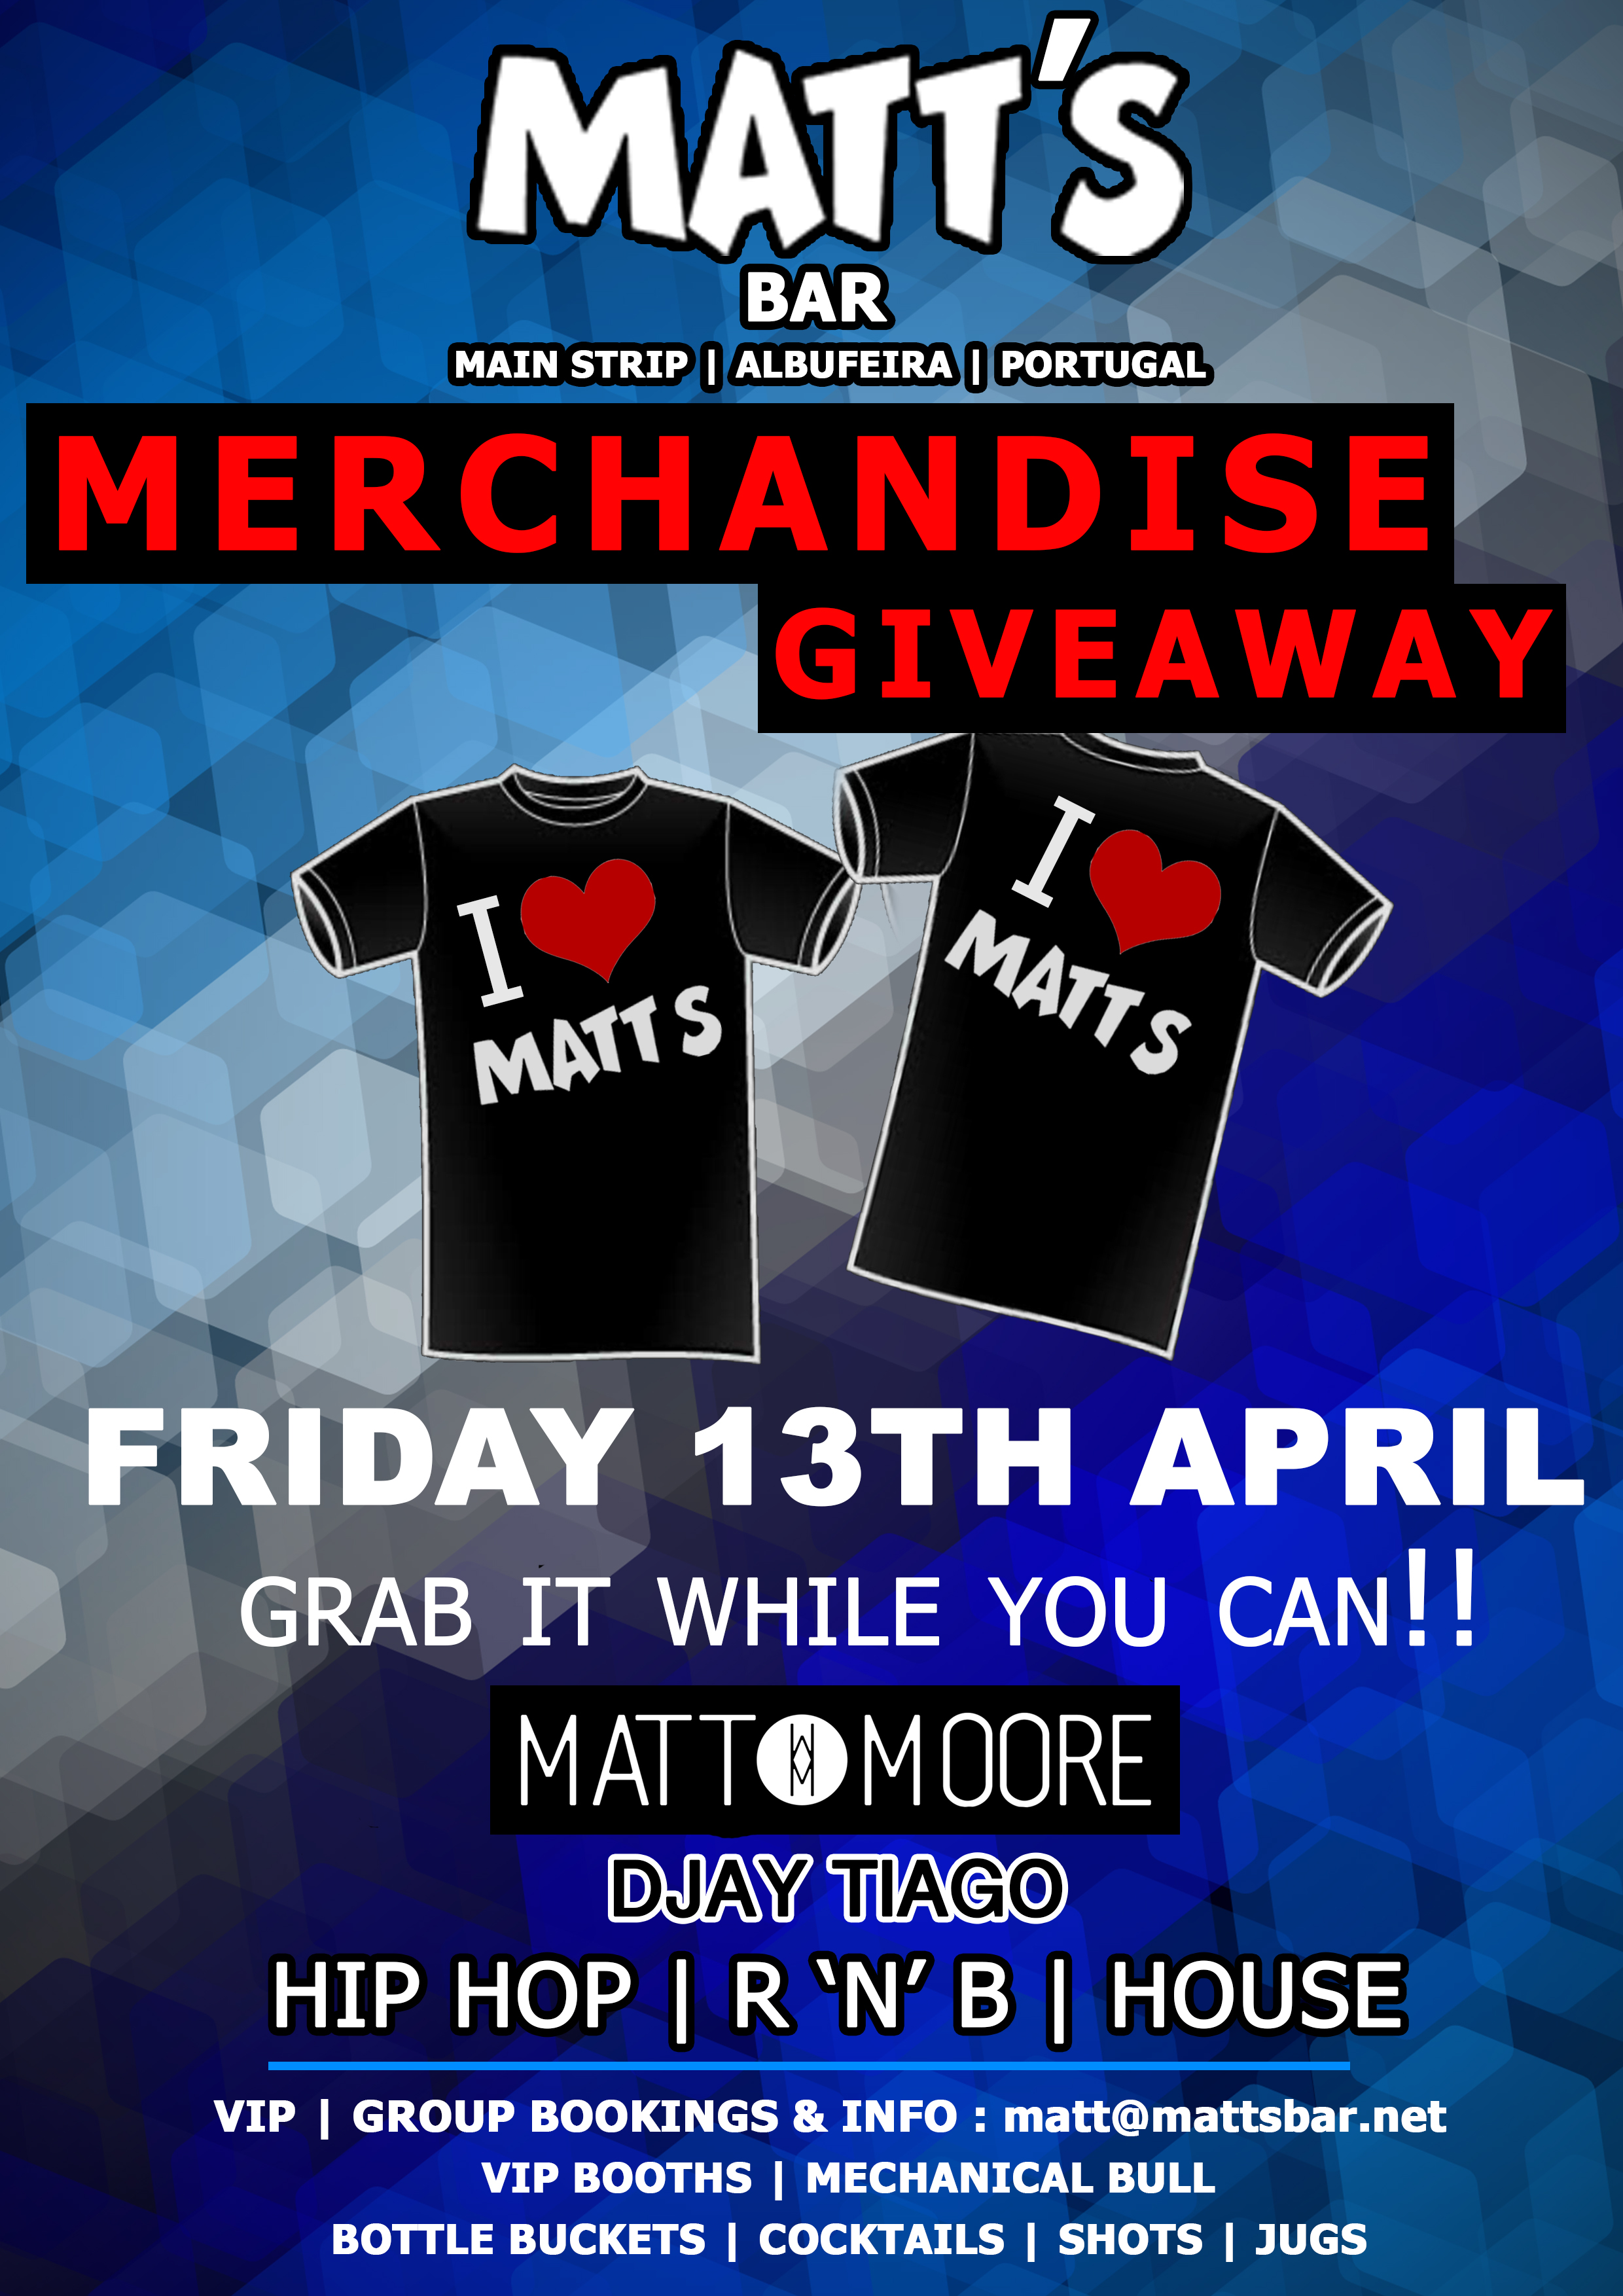 MATT'S BAR – MERCHANDISE GIVEAWAY